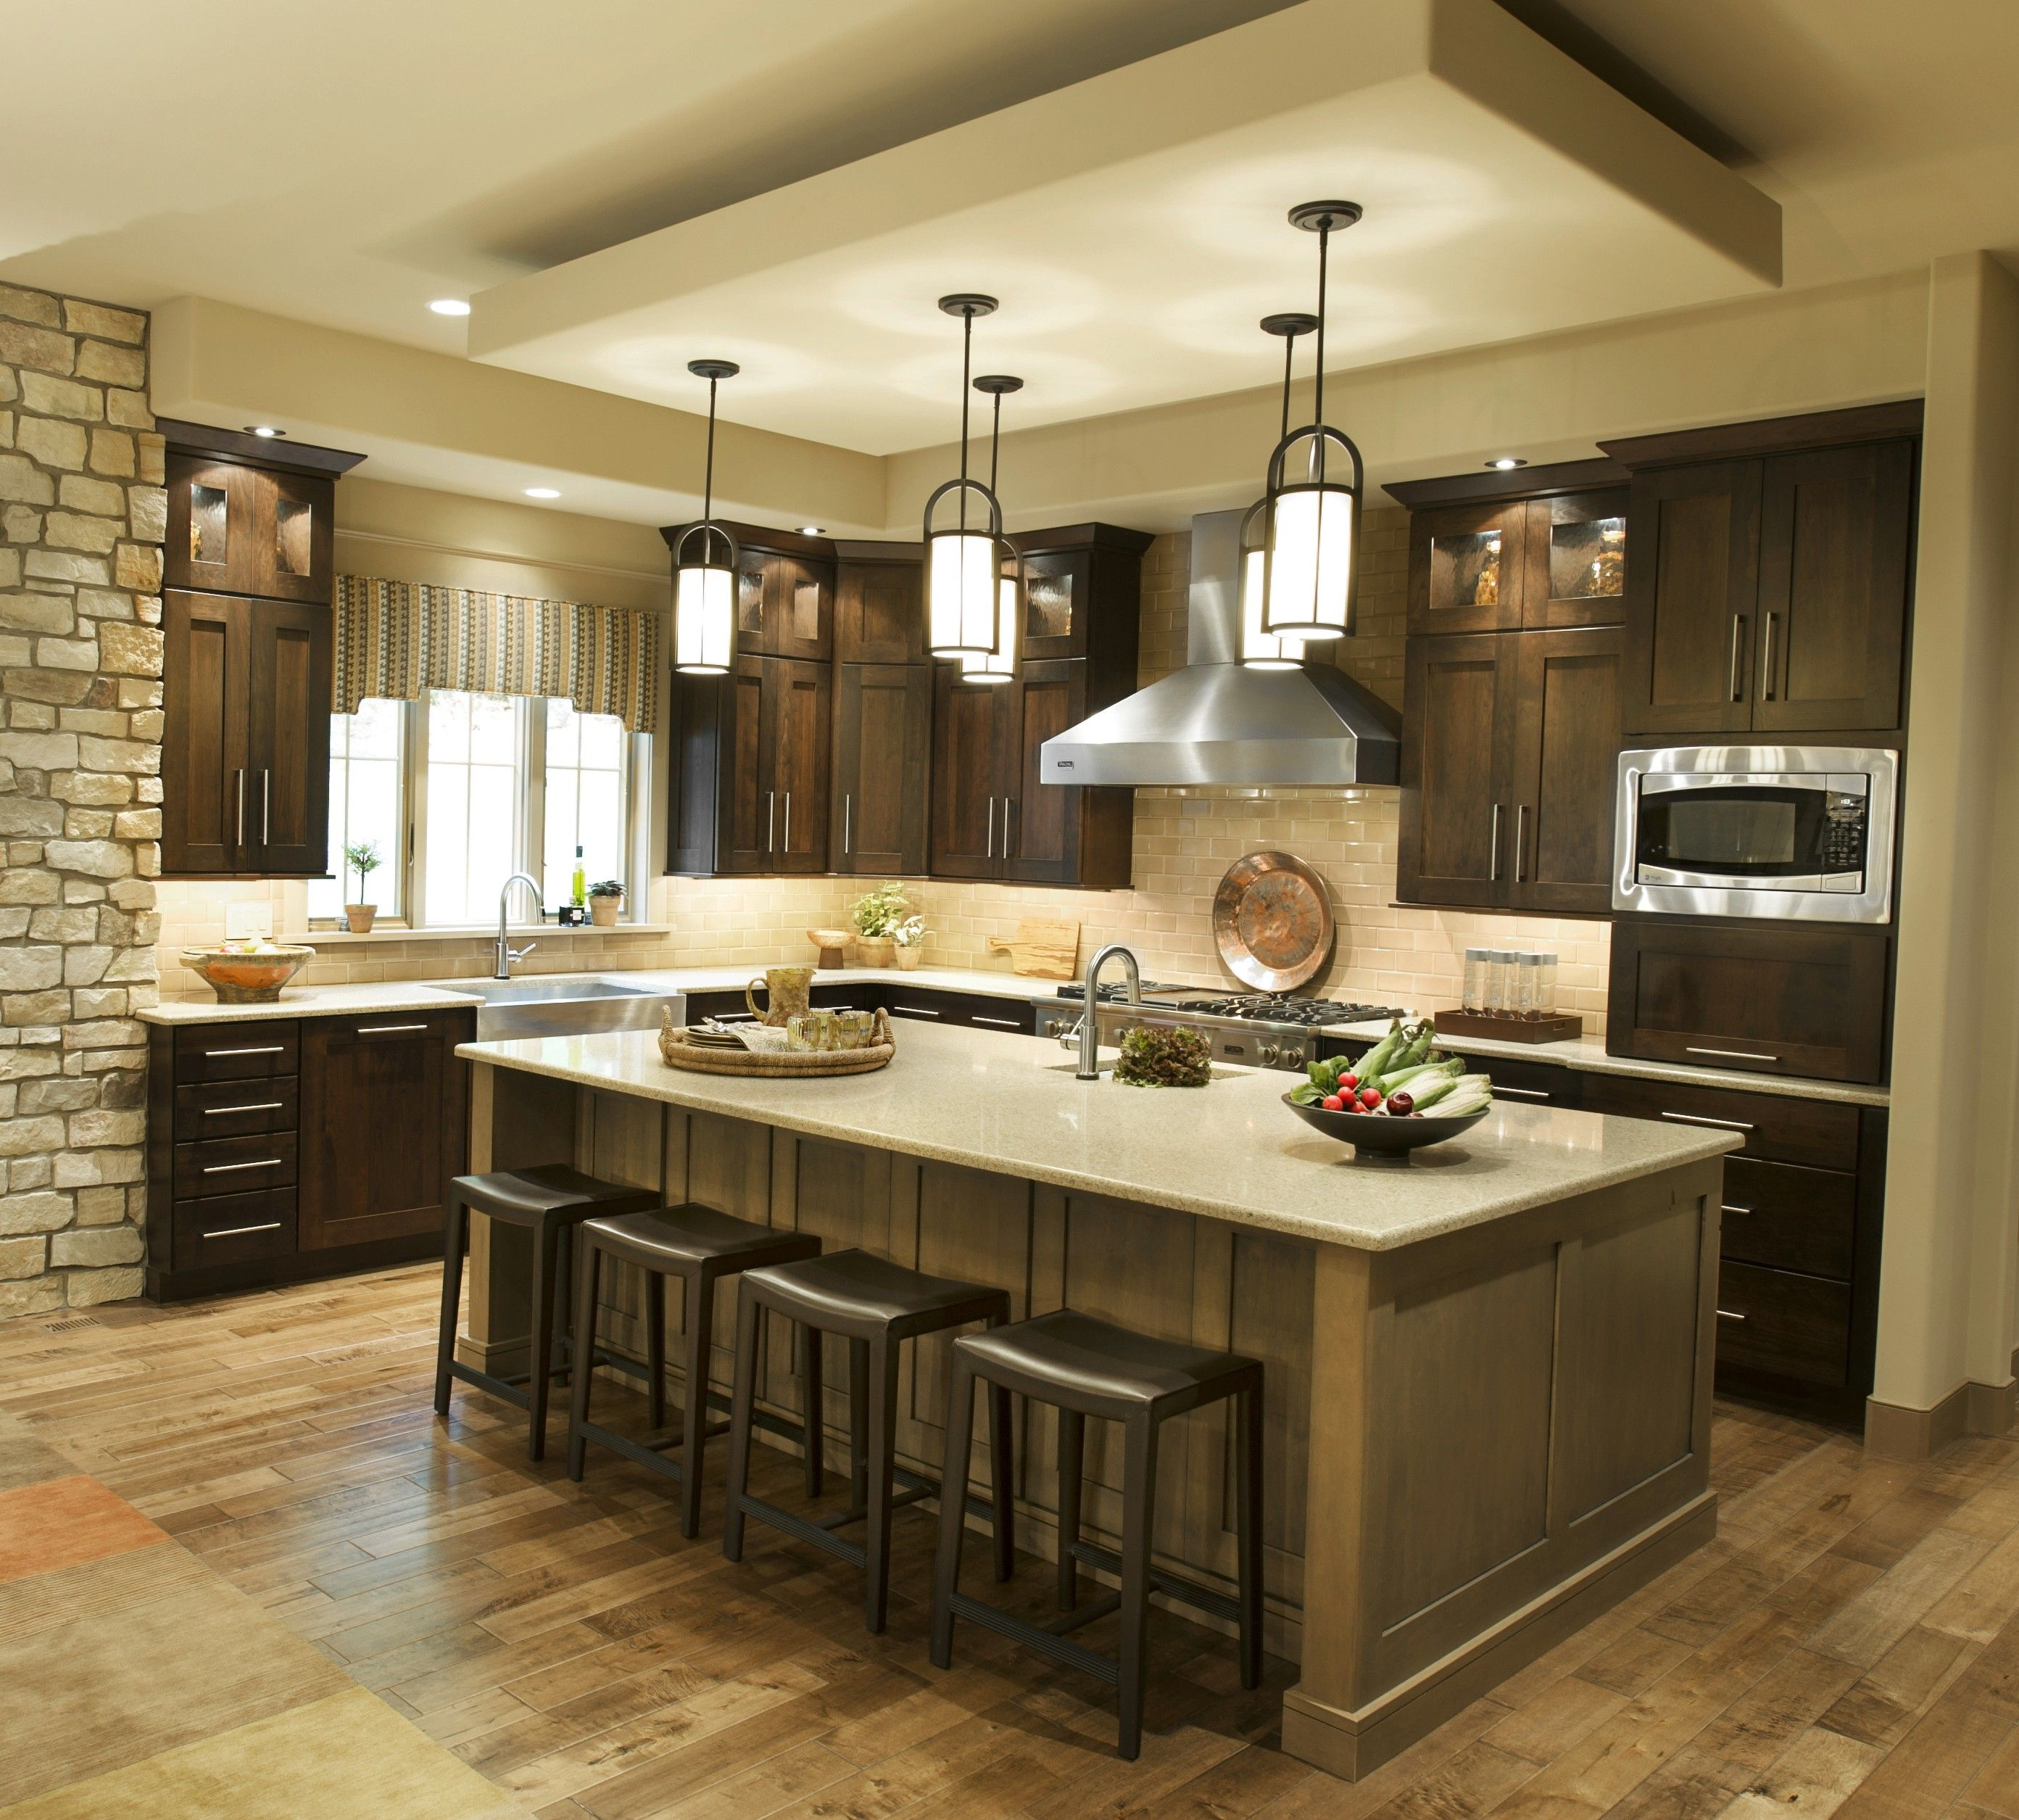 fetching five light kitchen island lighting inspiration in small l shaped kitchen design on l kitchen remodel id=99970